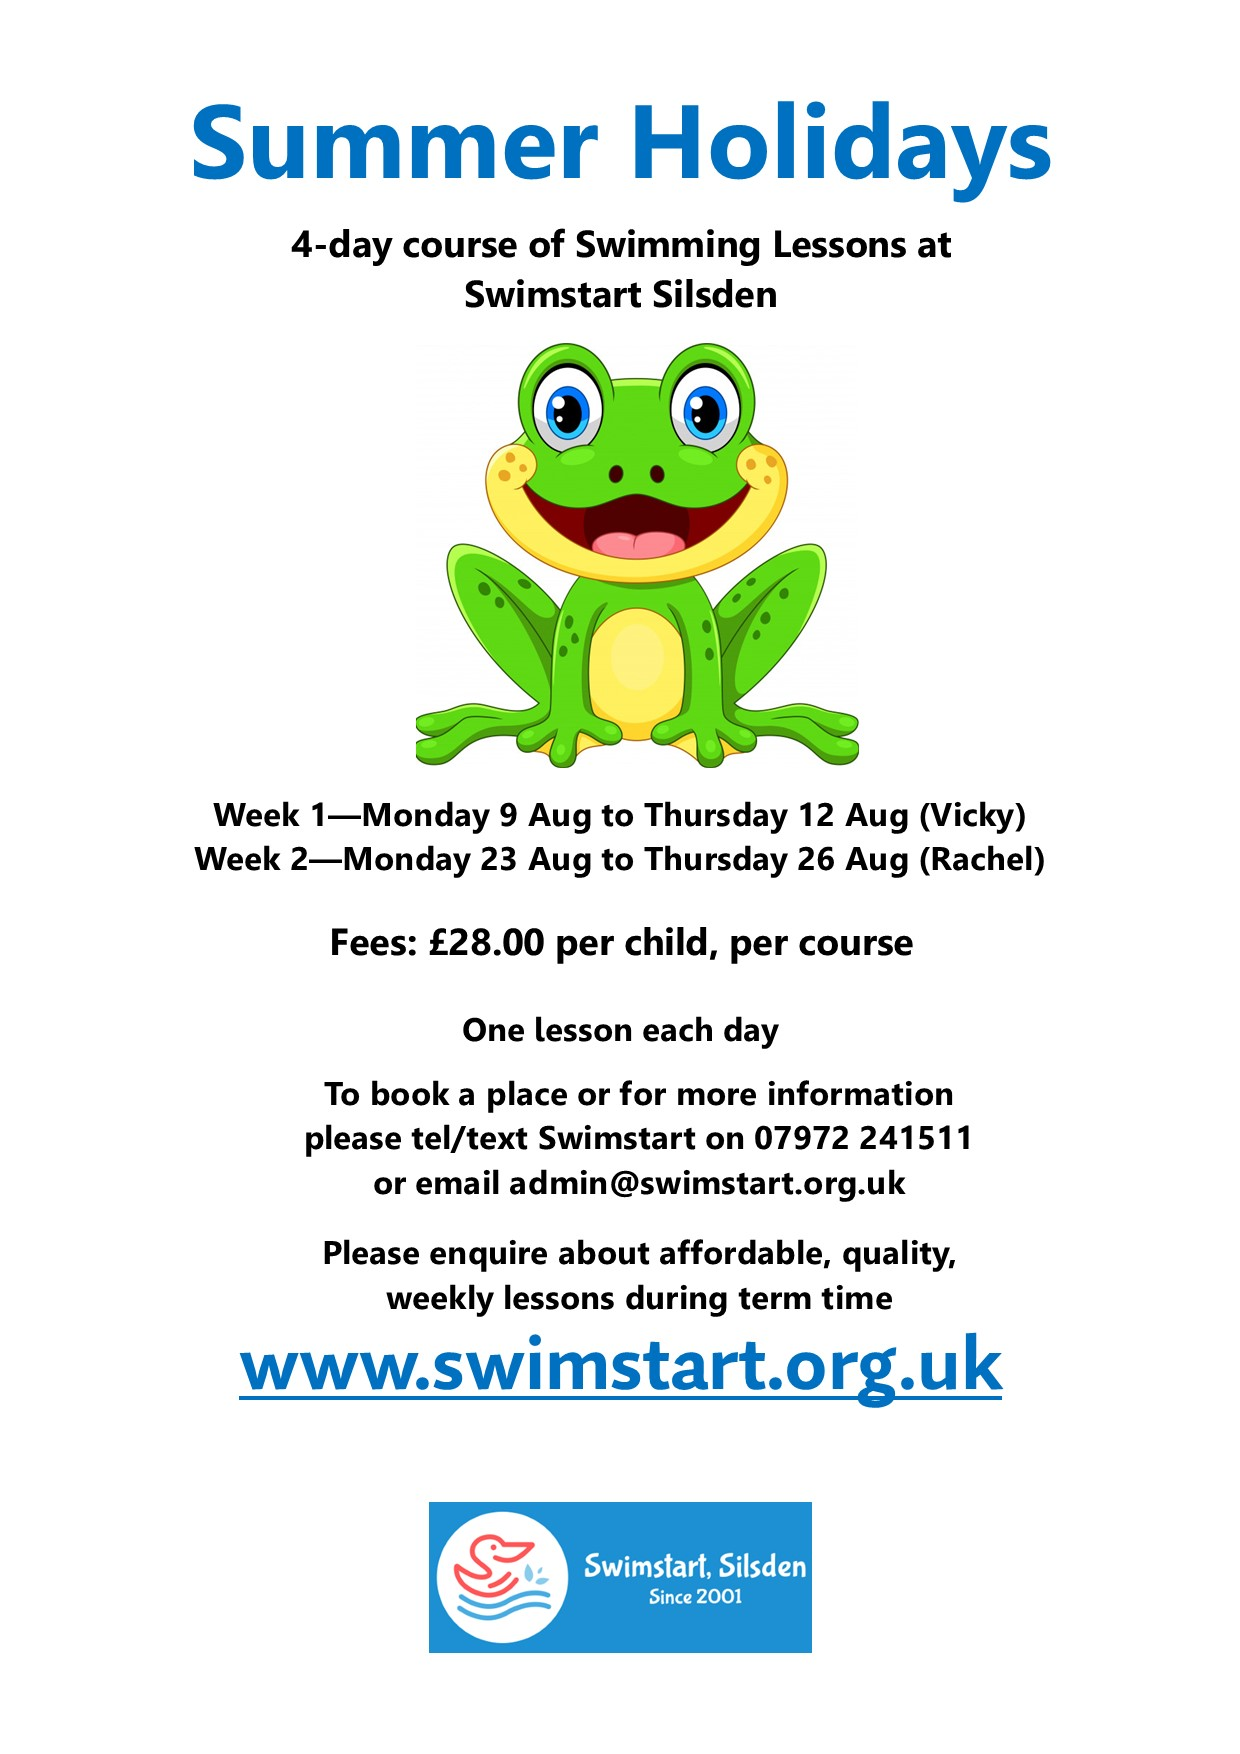 End of Term draws near – Booking for Summer Holiday Courses now open!